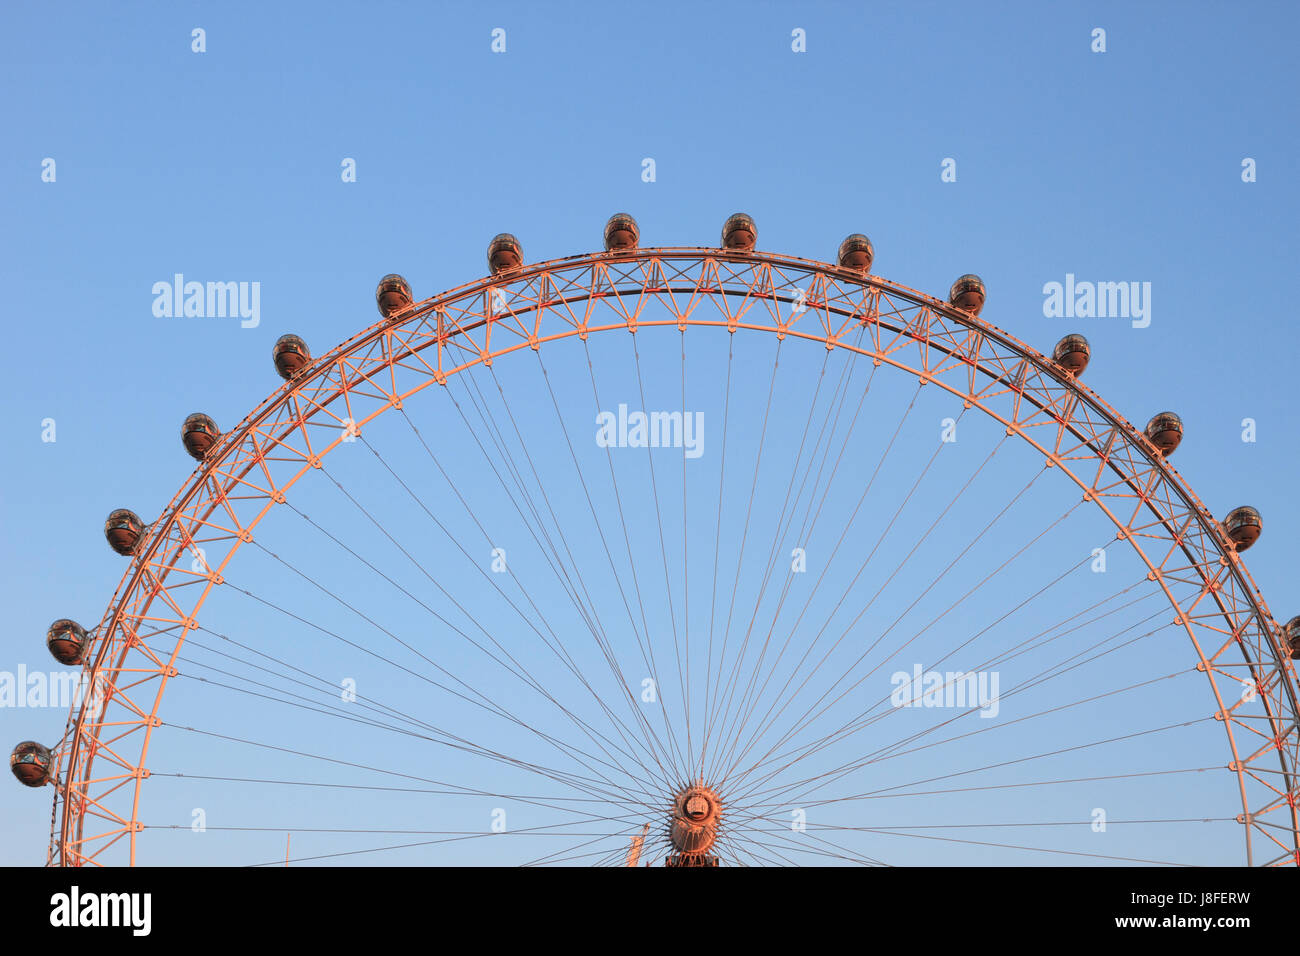 London Eye Ferris Wheel (detail), London, England. - Stock Image